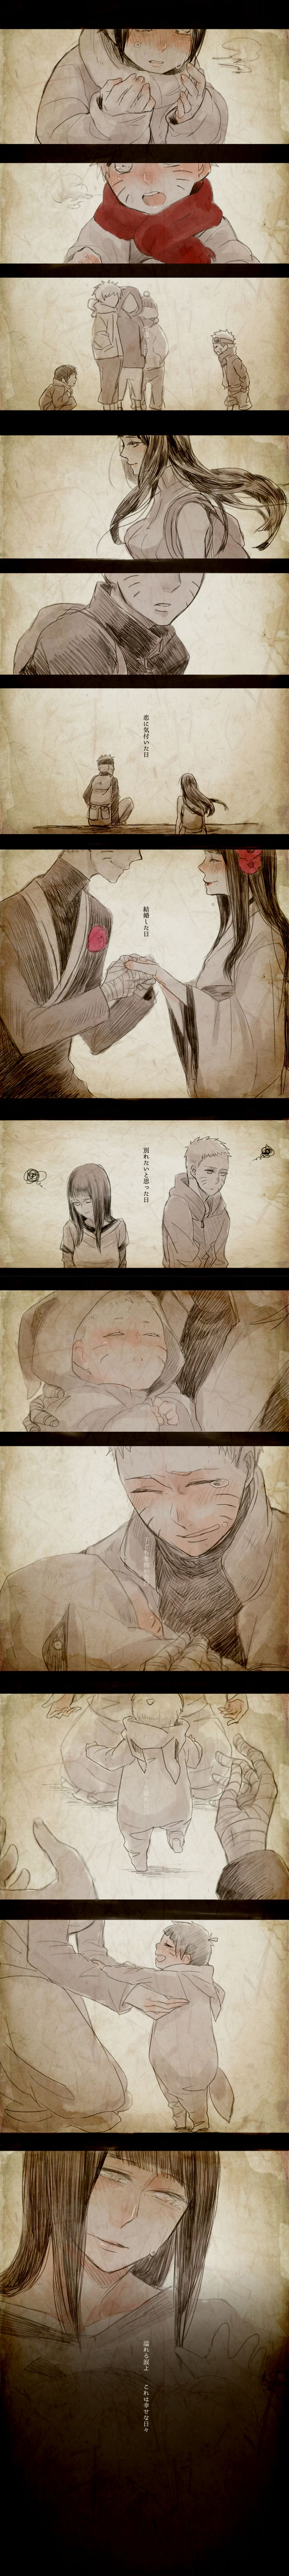 naruto the last movie. Naruto & Hinata